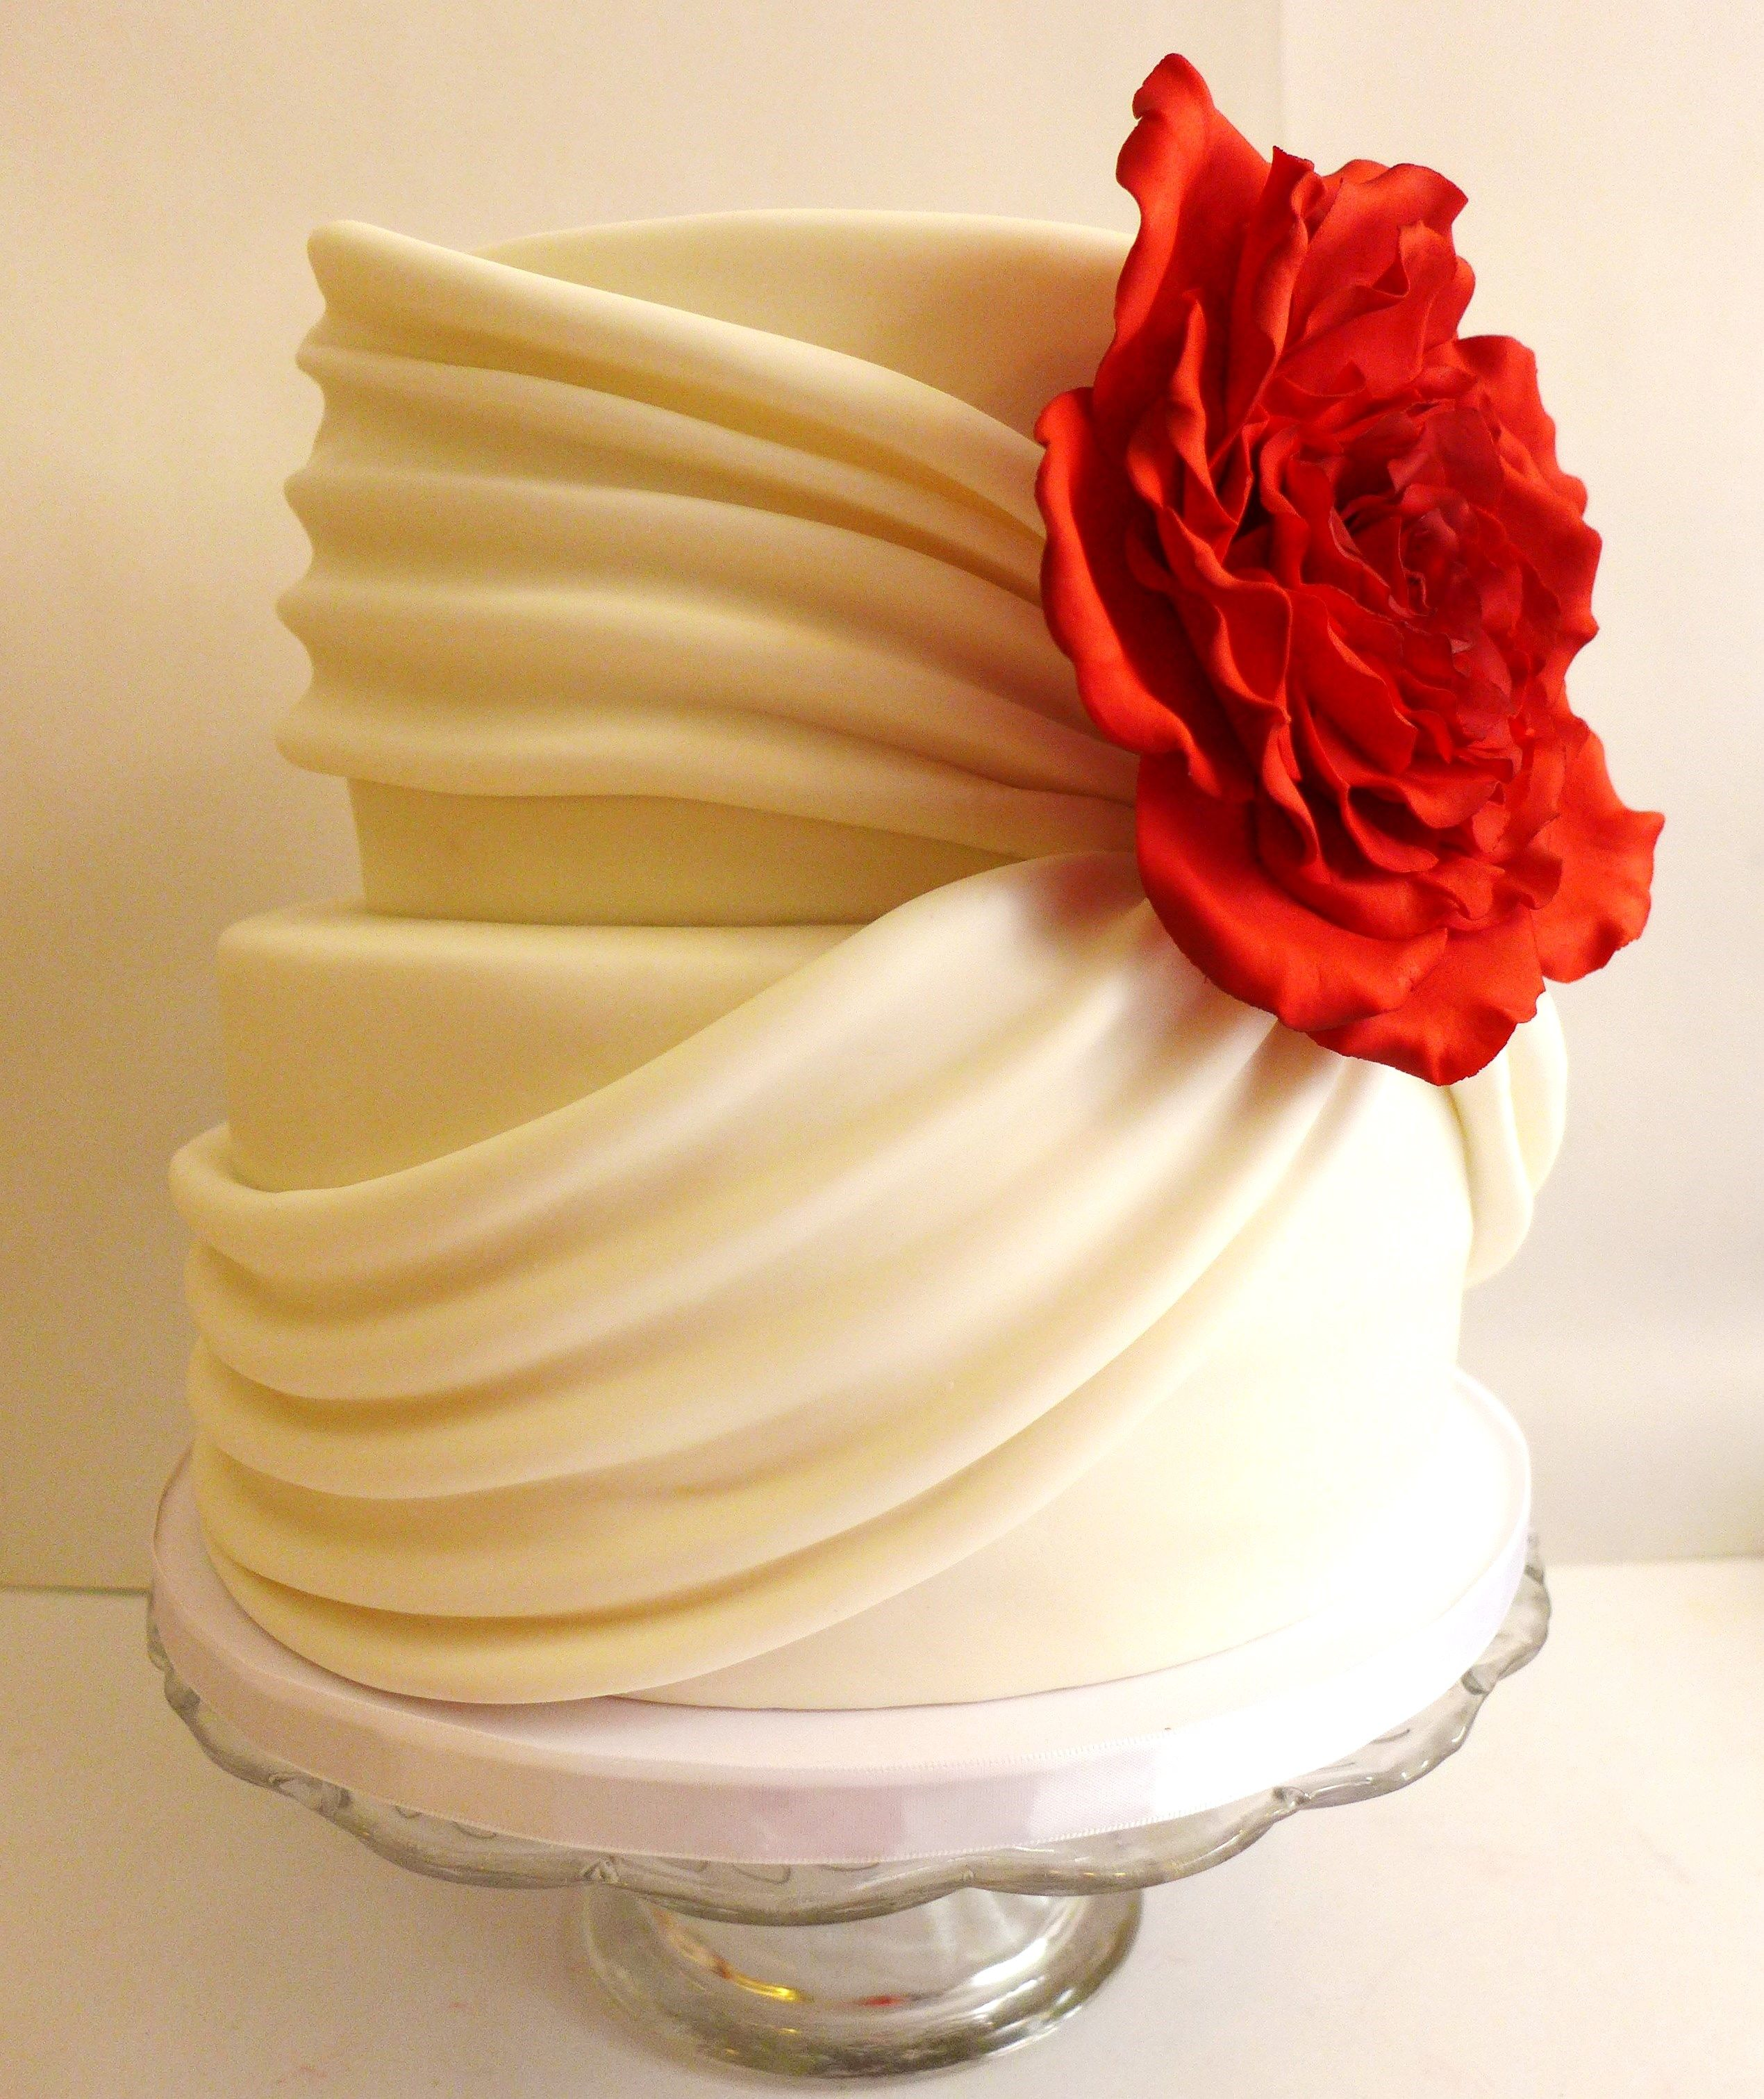 Red rose and cream ivory wedding cake, swags grecian style wedding ...